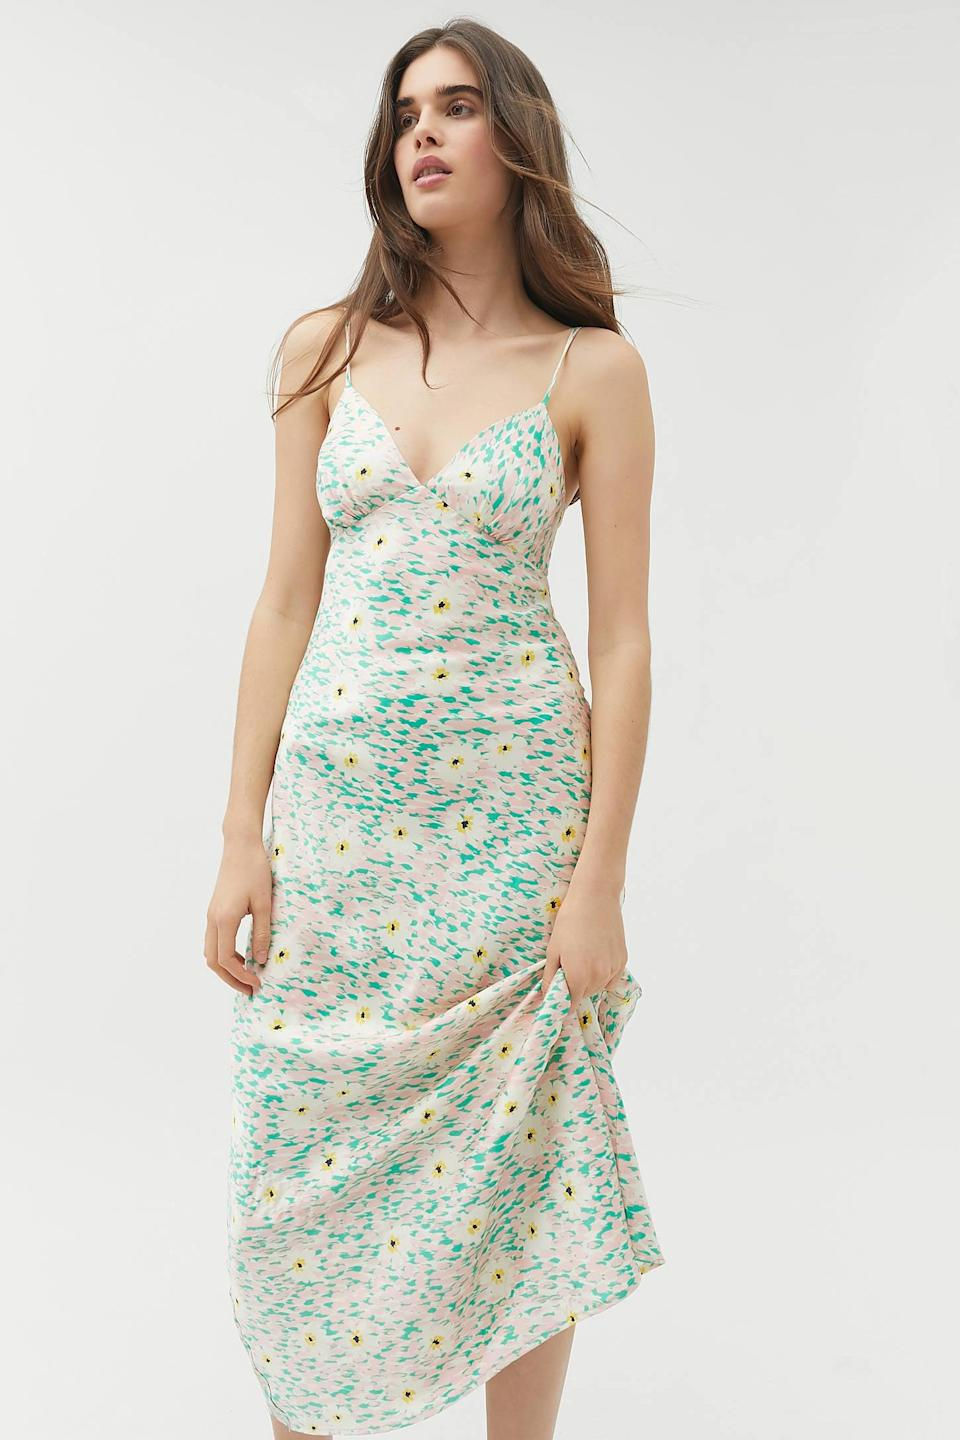 "<p>This <a href=""https://www.popsugar.com/buy/UO-Picnic-Two-Floral-Midi-Slip-Dress-544758?p_name=UO%20Picnic%20For%20Two%20Floral%20Midi%20Slip%20Dress&retailer=urbanoutfitters.com&pid=544758&price=79&evar1=fab%3Aus&evar9=45873724&evar98=https%3A%2F%2Fwww.popsugar.com%2Ffashion%2Fphoto-gallery%2F45873724%2Fimage%2F47261785%2FUO-Picnic-For-Two-Floral-Midi-Slip-Dress&list1=shopping%2Cdresses%2Cspring%2Cflorals%2Cspring%20fashion&prop13=mobile&pdata=1"" class=""link rapid-noclick-resp"" rel=""nofollow noopener"" target=""_blank"" data-ylk=""slk:UO Picnic For Two Floral Midi Slip Dress"">UO Picnic For Two Floral Midi Slip Dress</a> ($79) is so lovely.</p>"